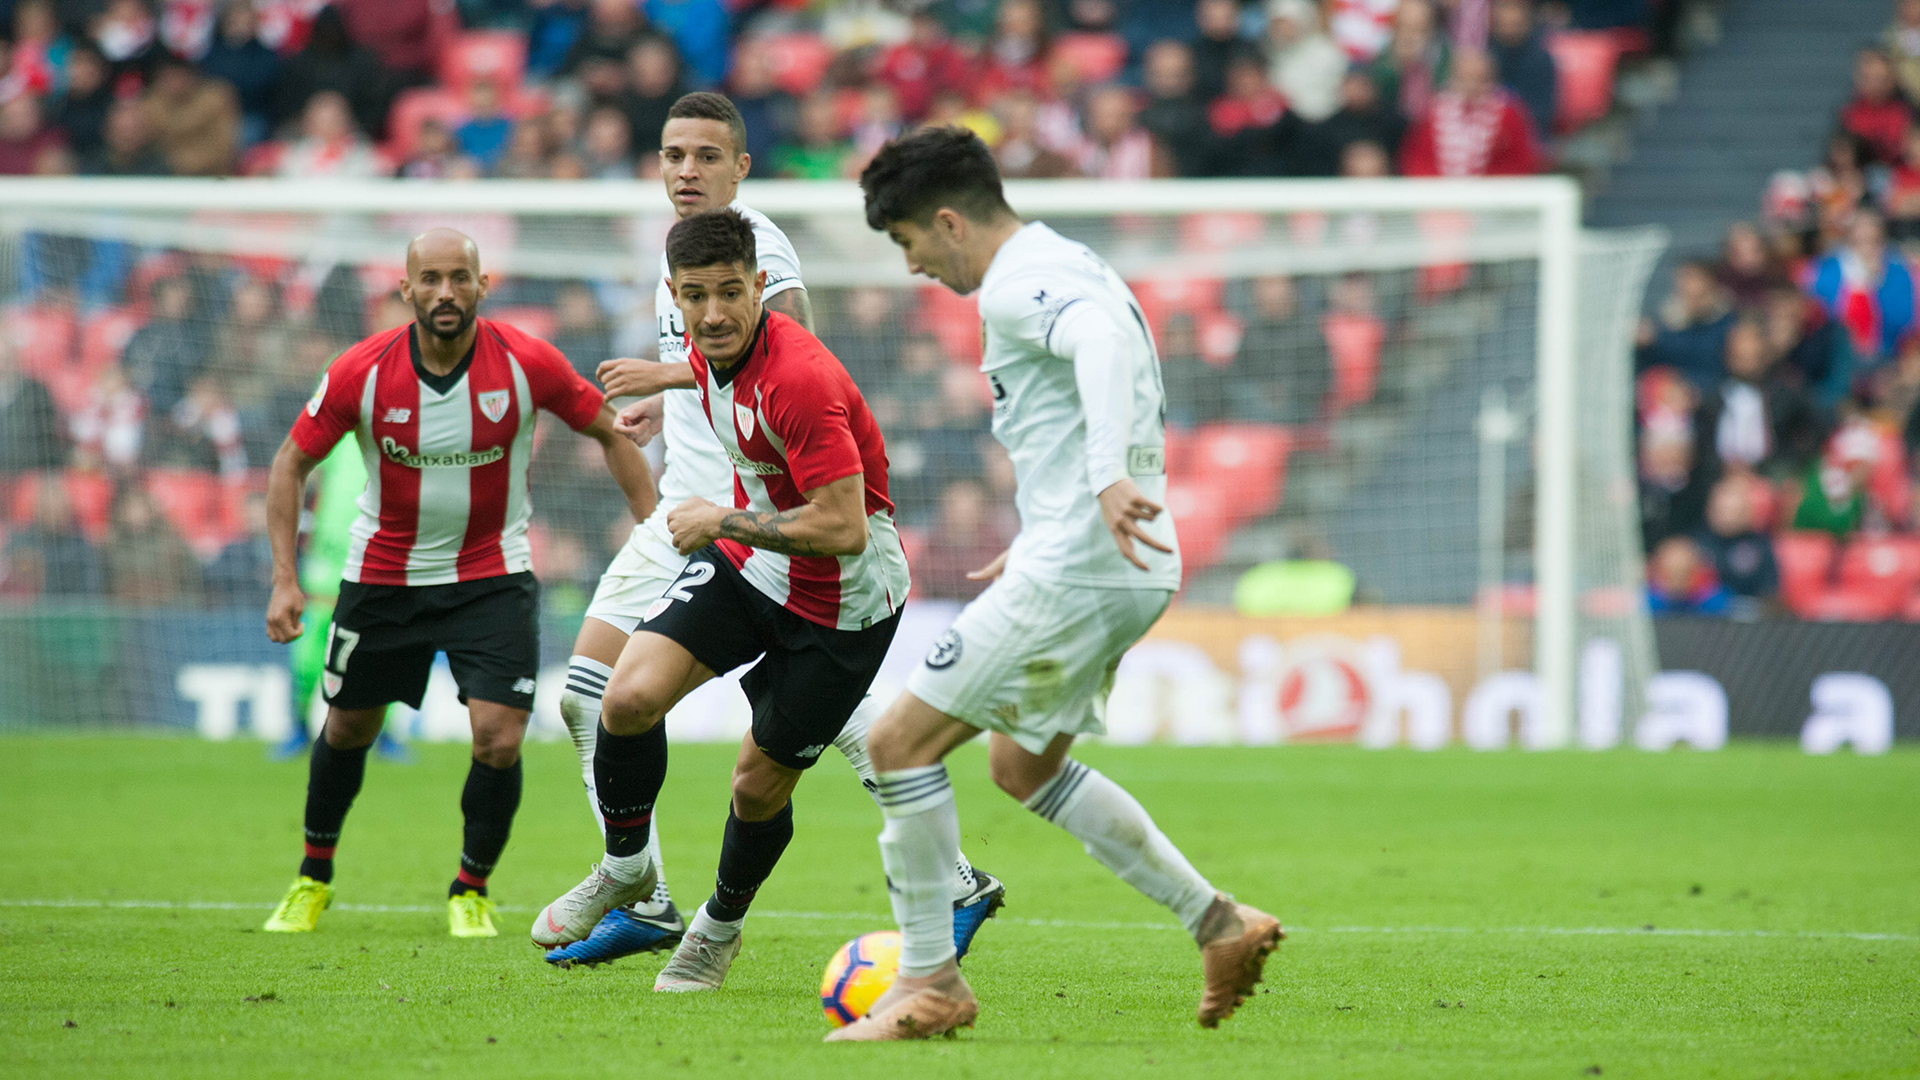 Billets pour le match Valencia CF – Athletic Club